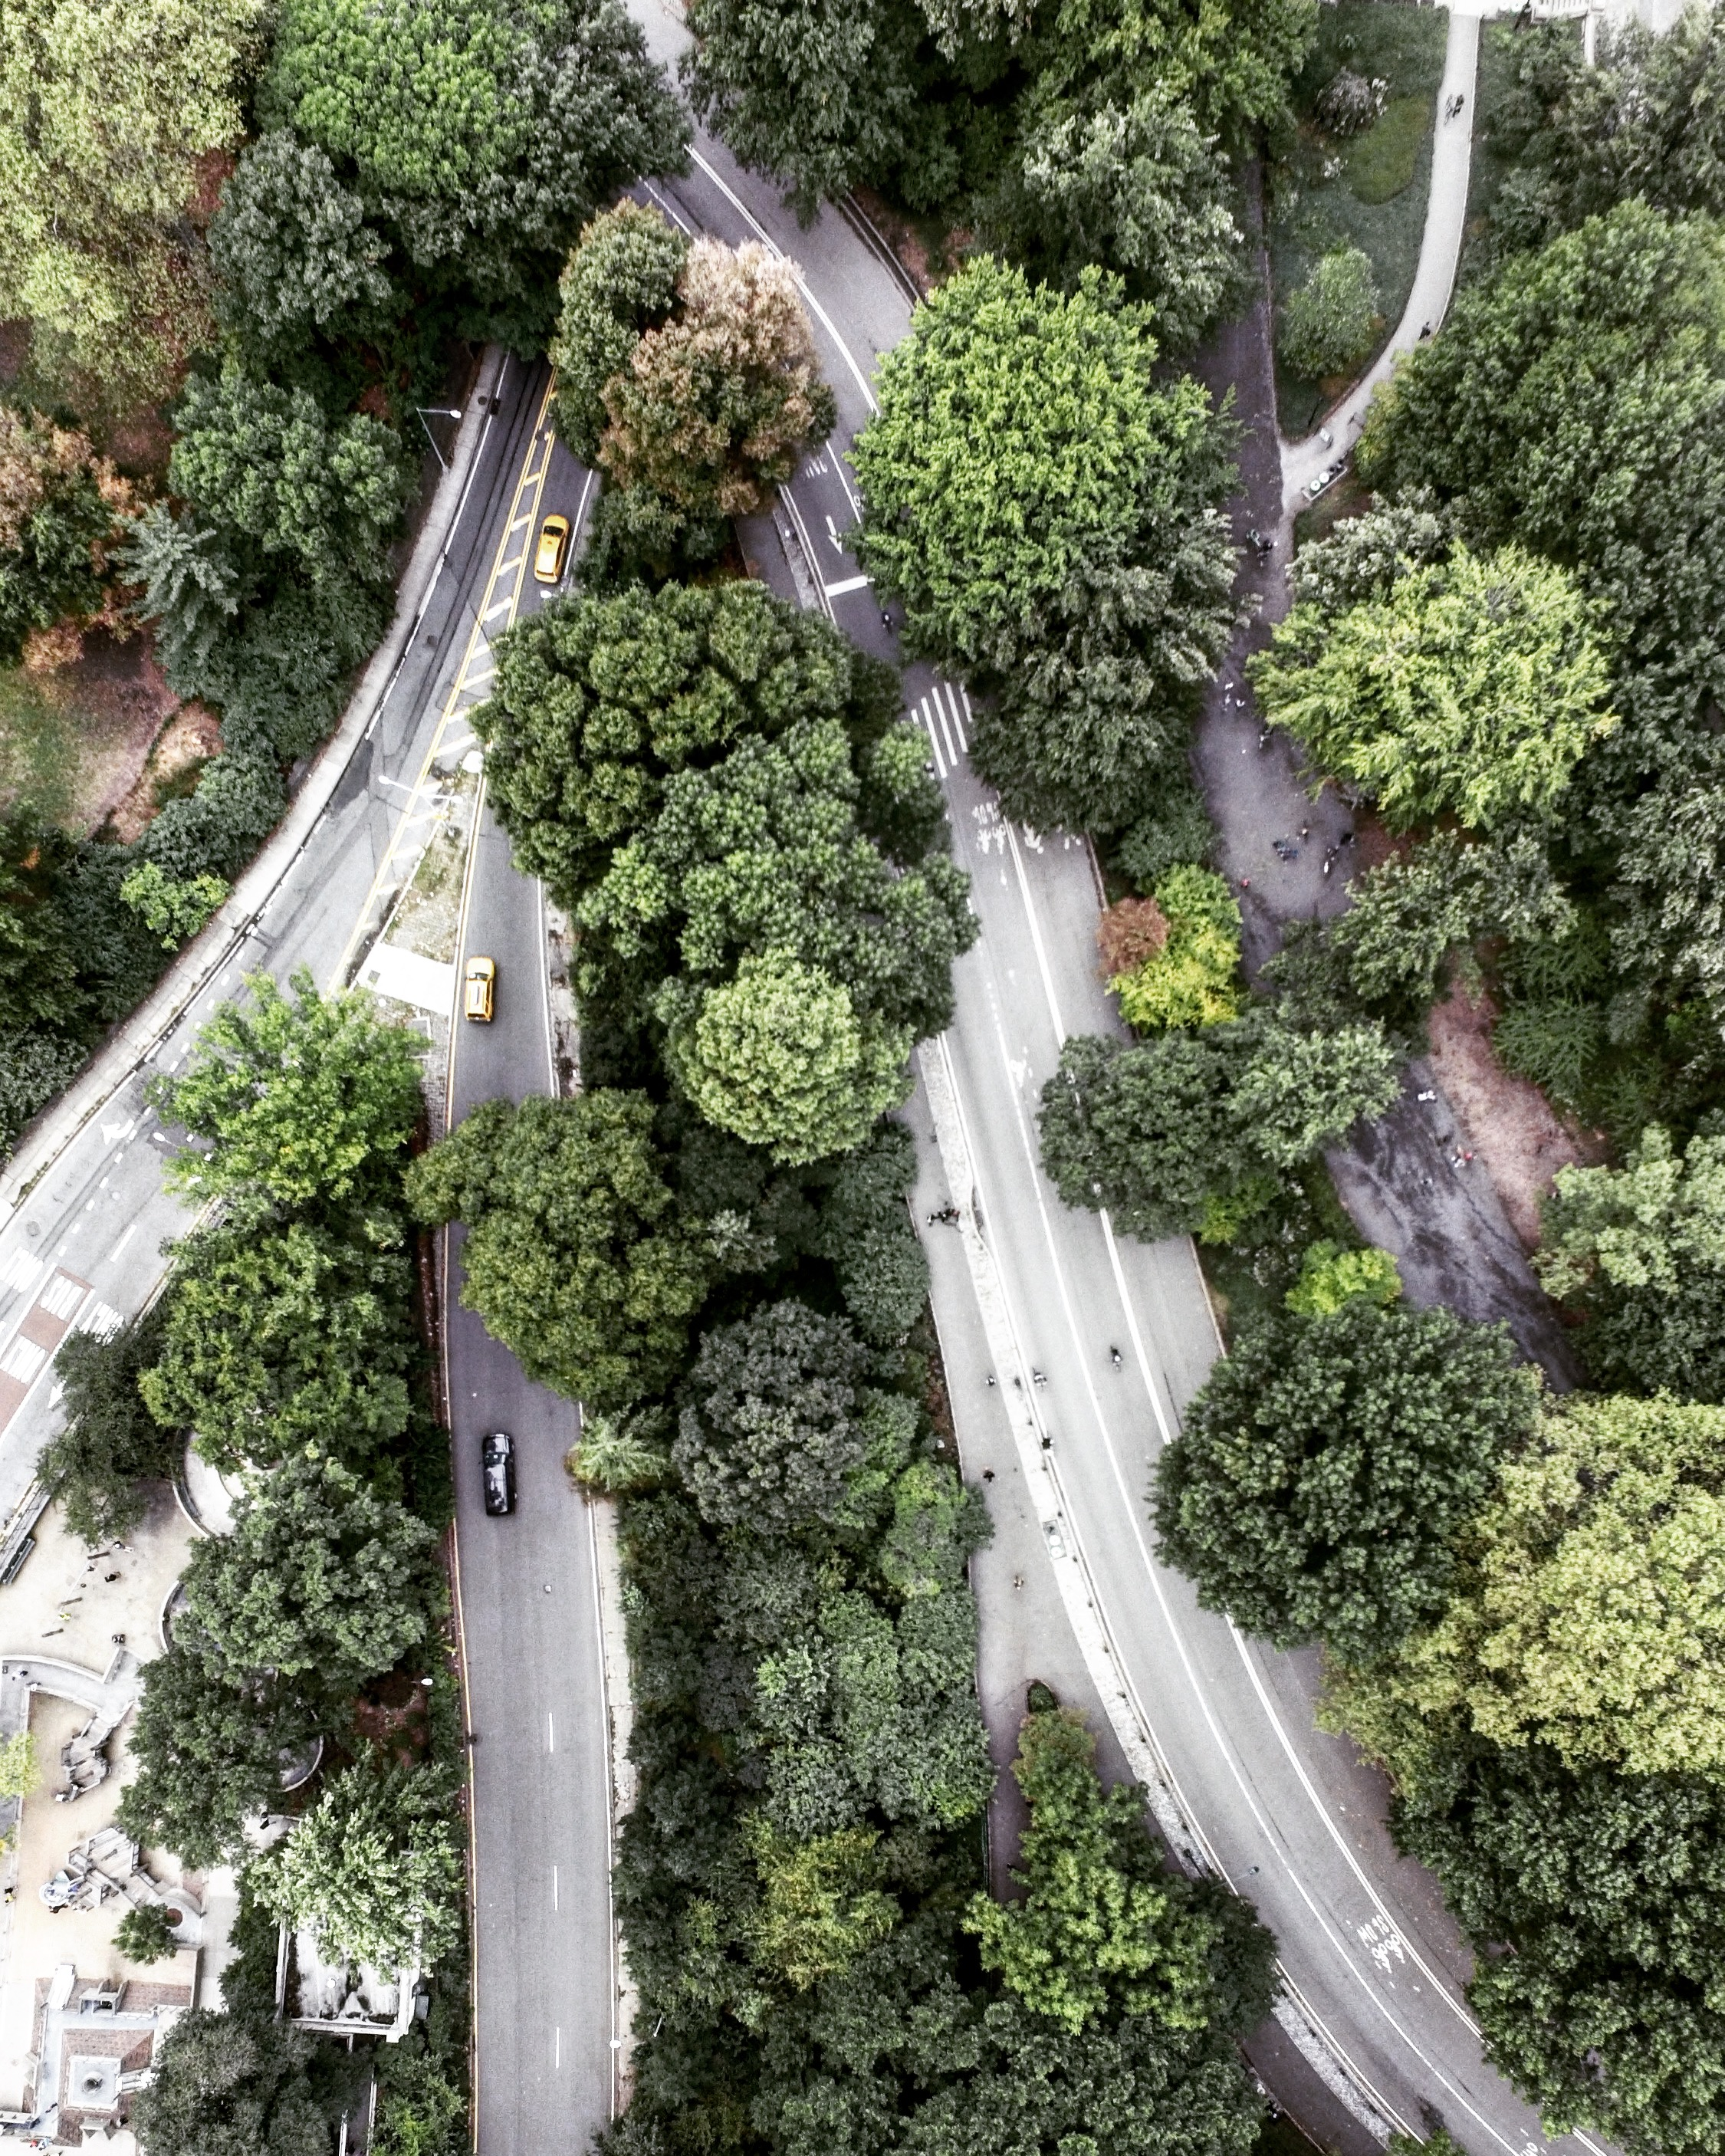 Aerial view of Central Park driveway